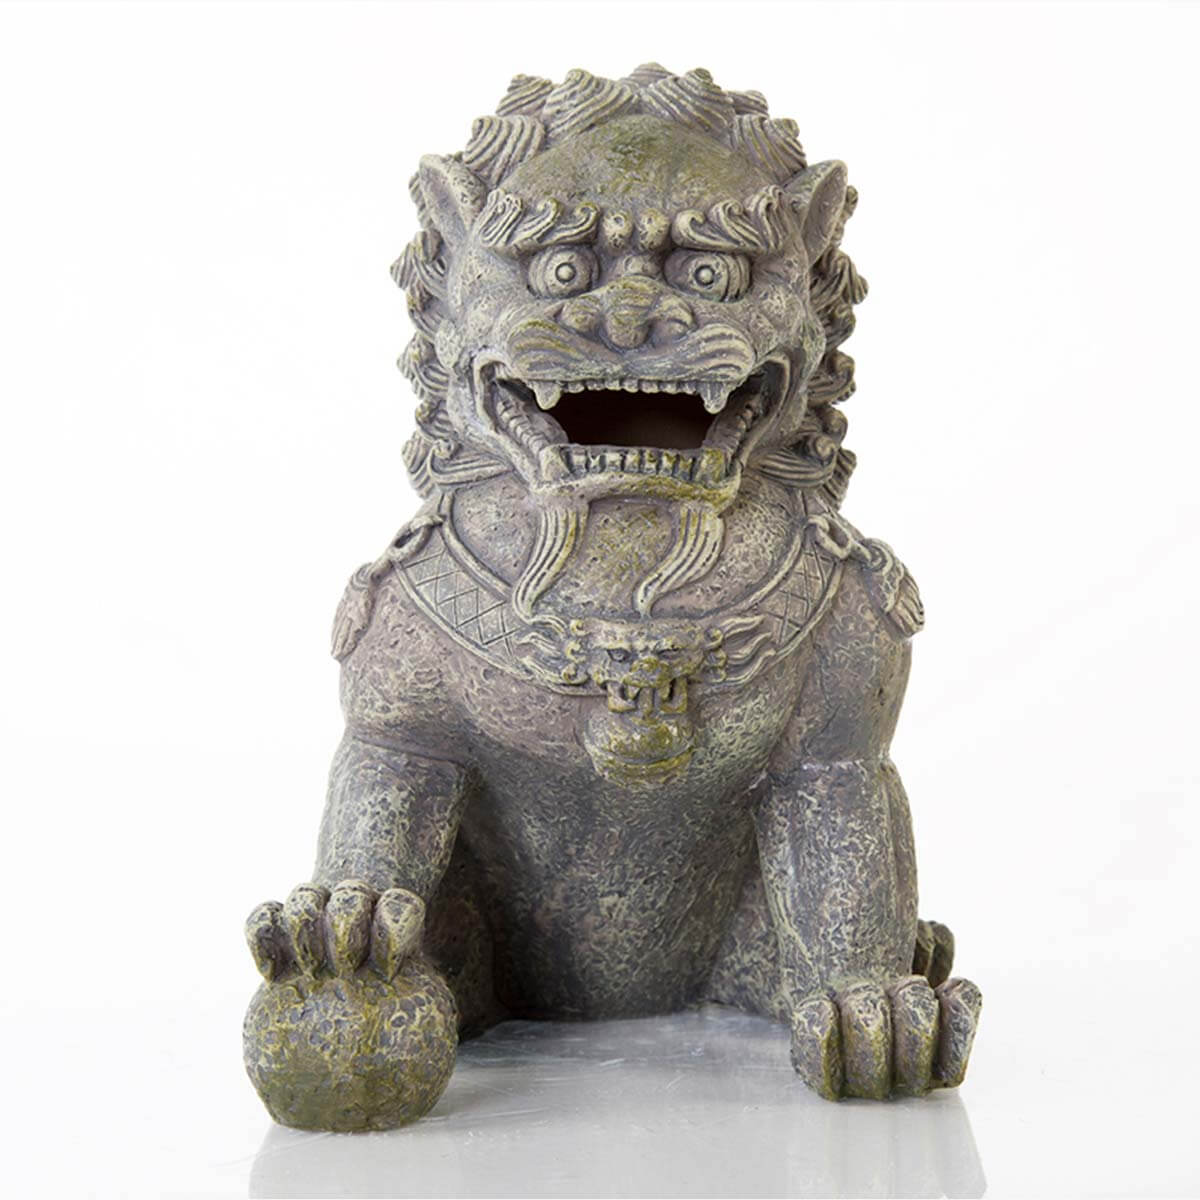 BioBubble Decorative Temple Guardian Large 6